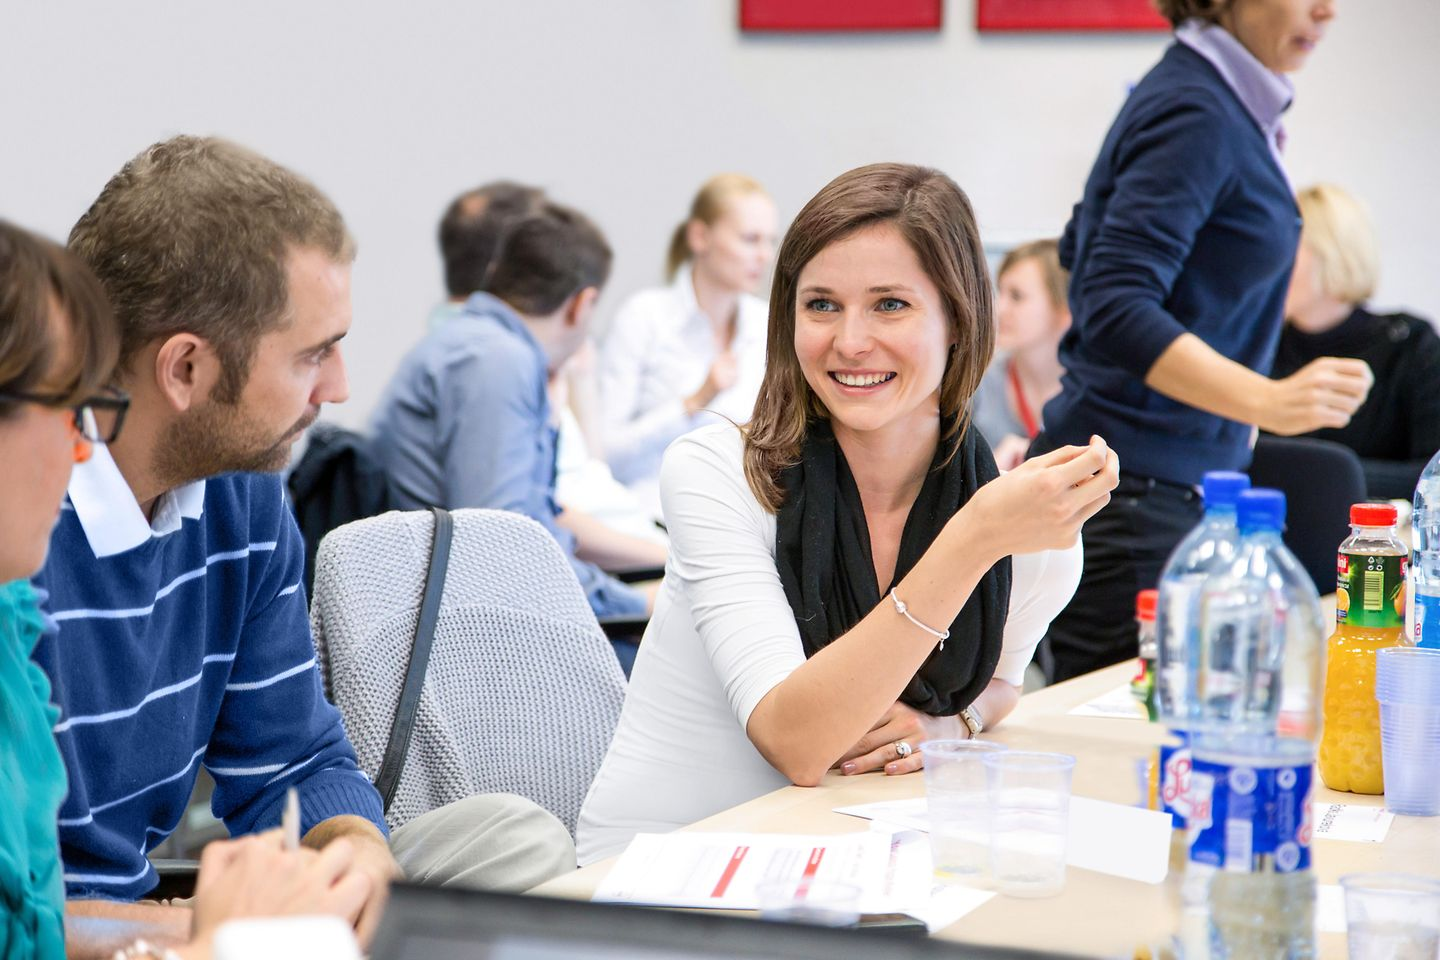 A female employee attending a workshop.